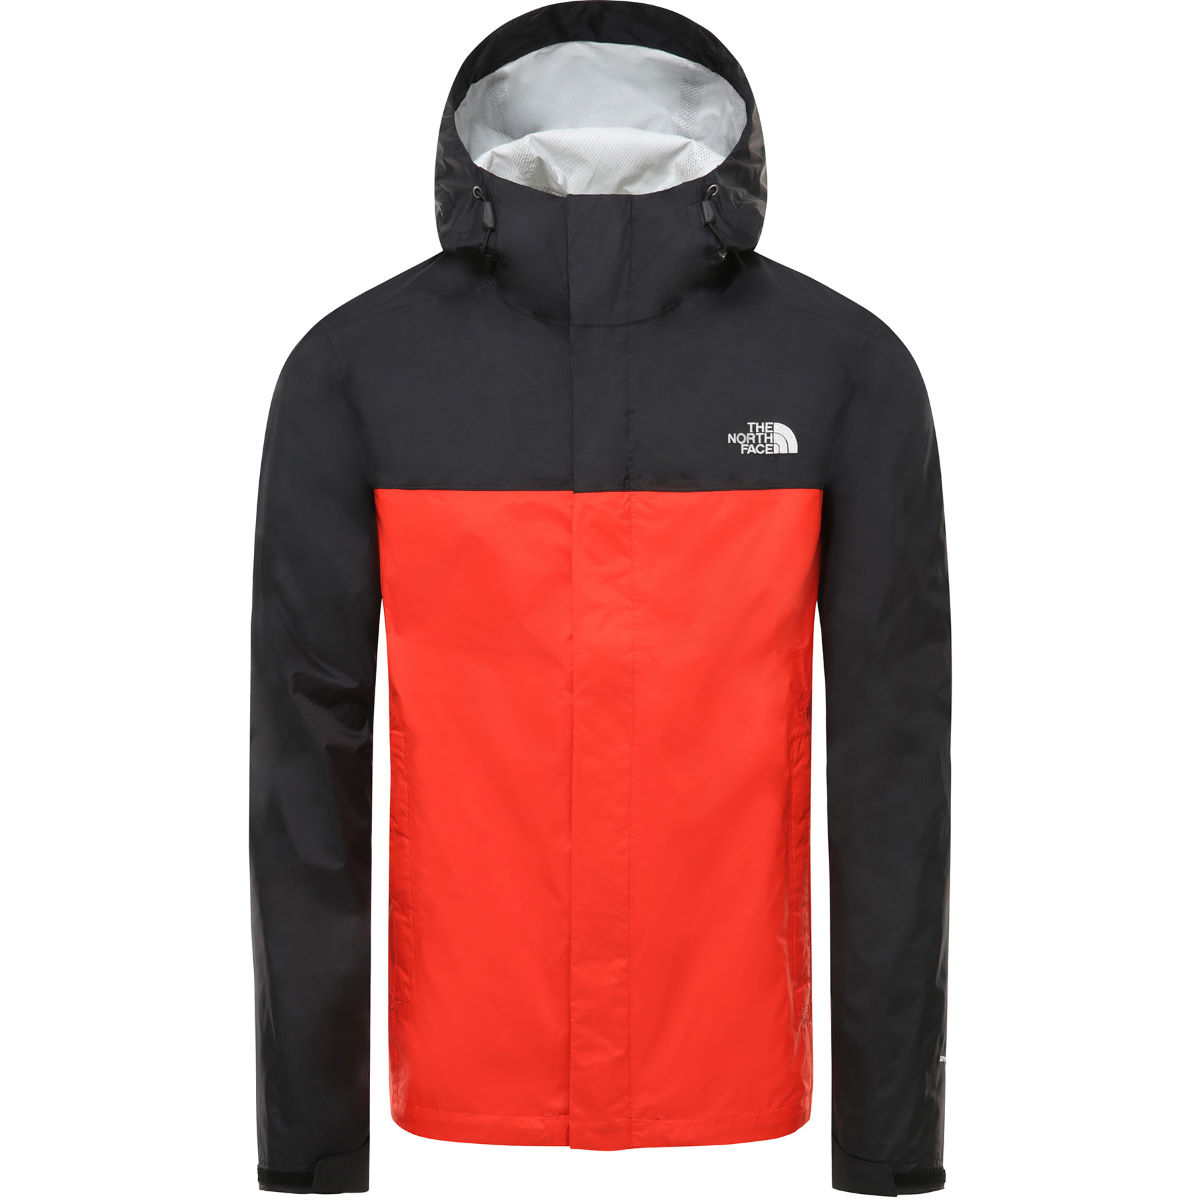 The North Face The North Face Venture 2 Jacket   Jackets